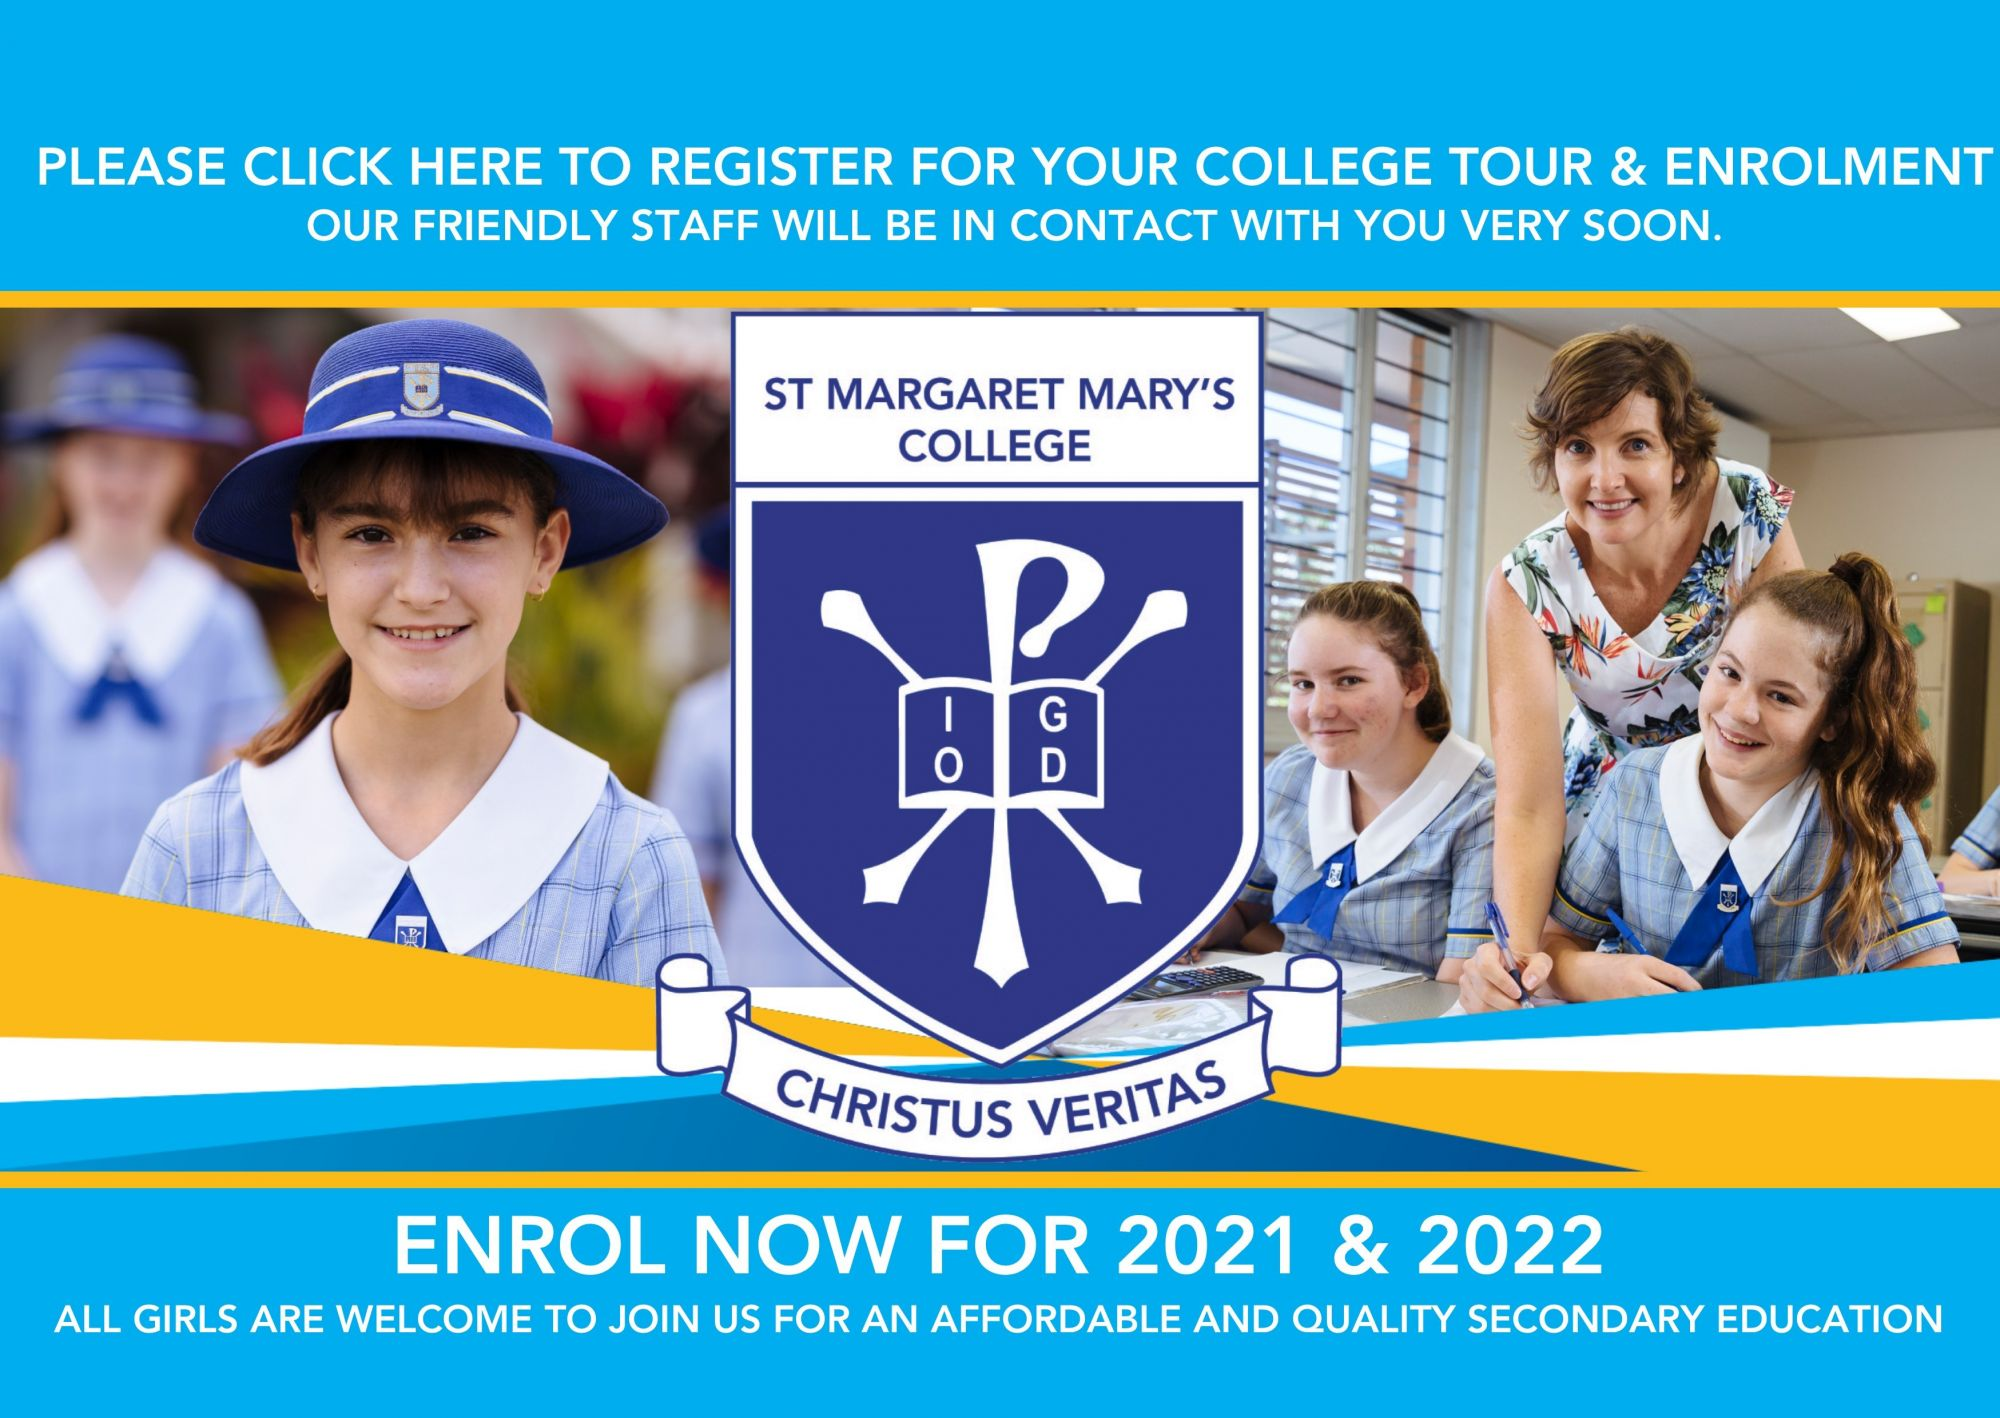 SMMC COLLEGE TOUR BOOKINGS & ENROLMENTS